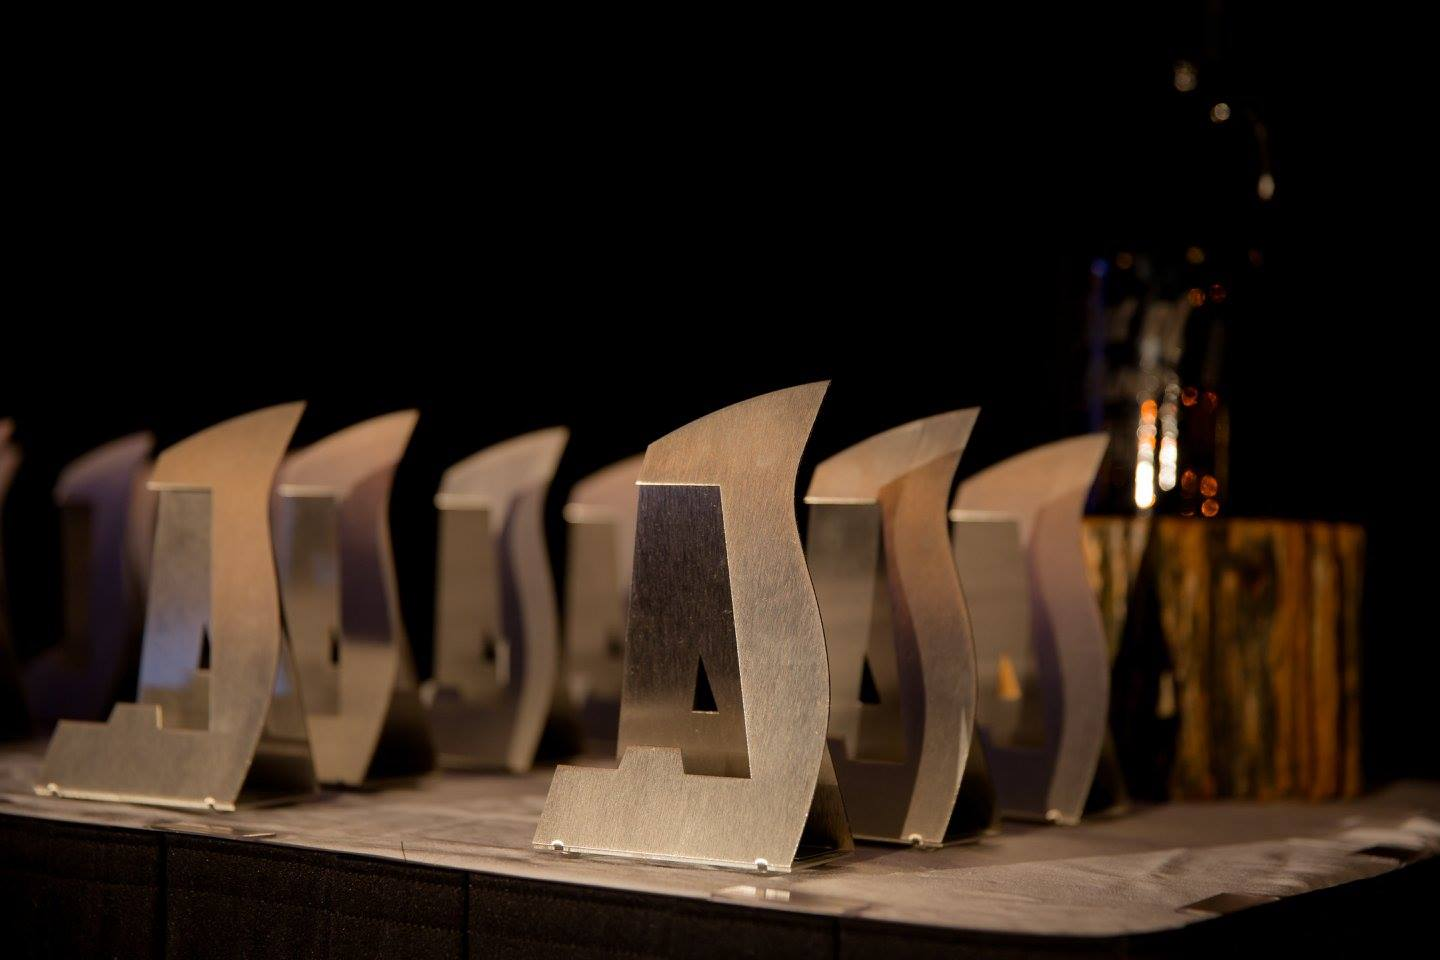 Farmboy American Advertising awards trophies